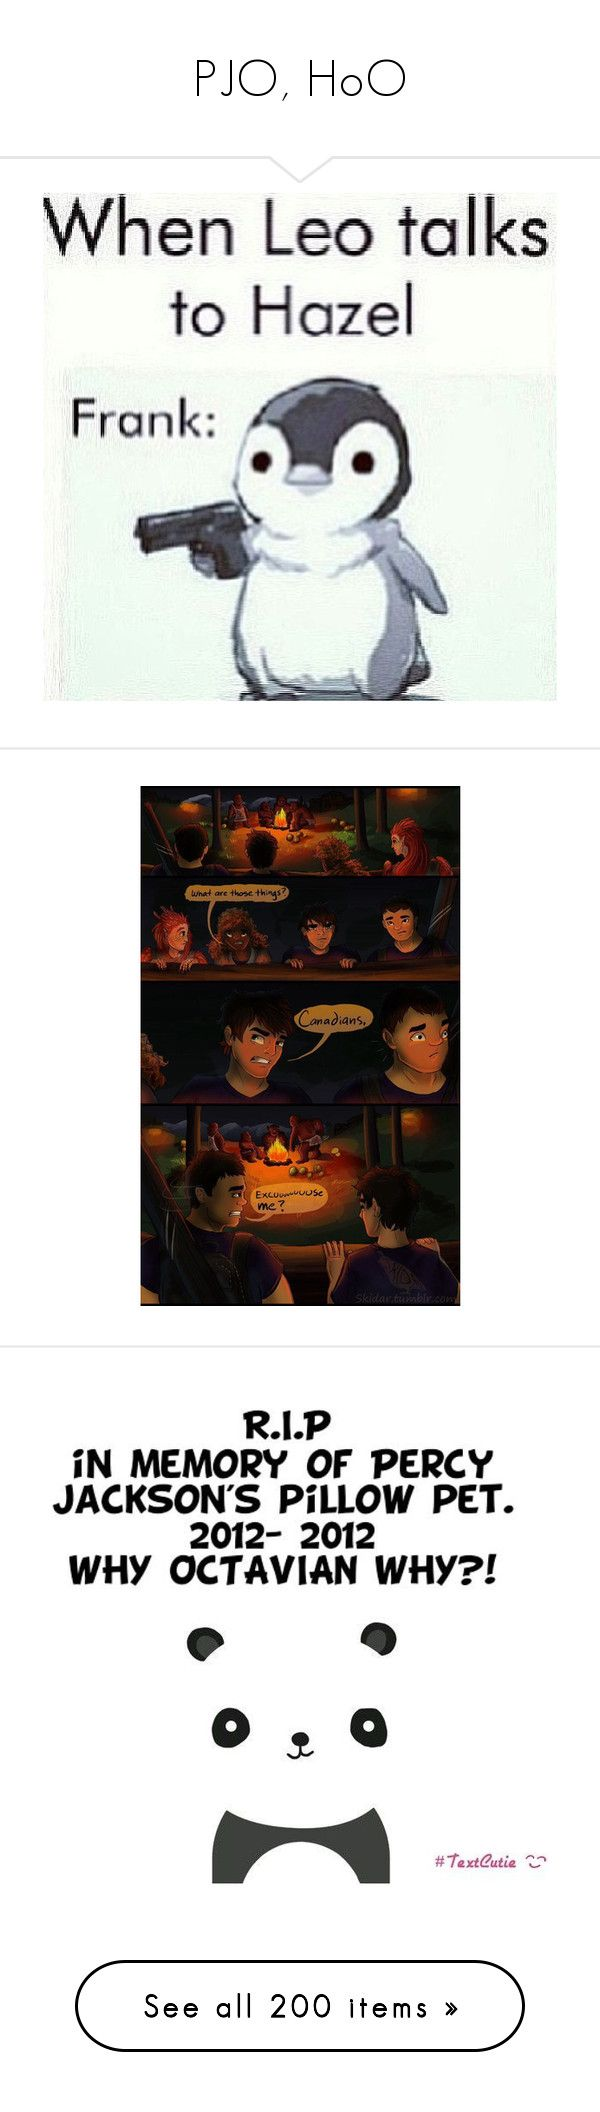 """""""PJO, HoO"""" by beachgirl511 ❤ liked on Polyvore featuring percy jackson, words, fandoms, pictures, quotes, pjo/hoo, phrase, filler, saying and text"""